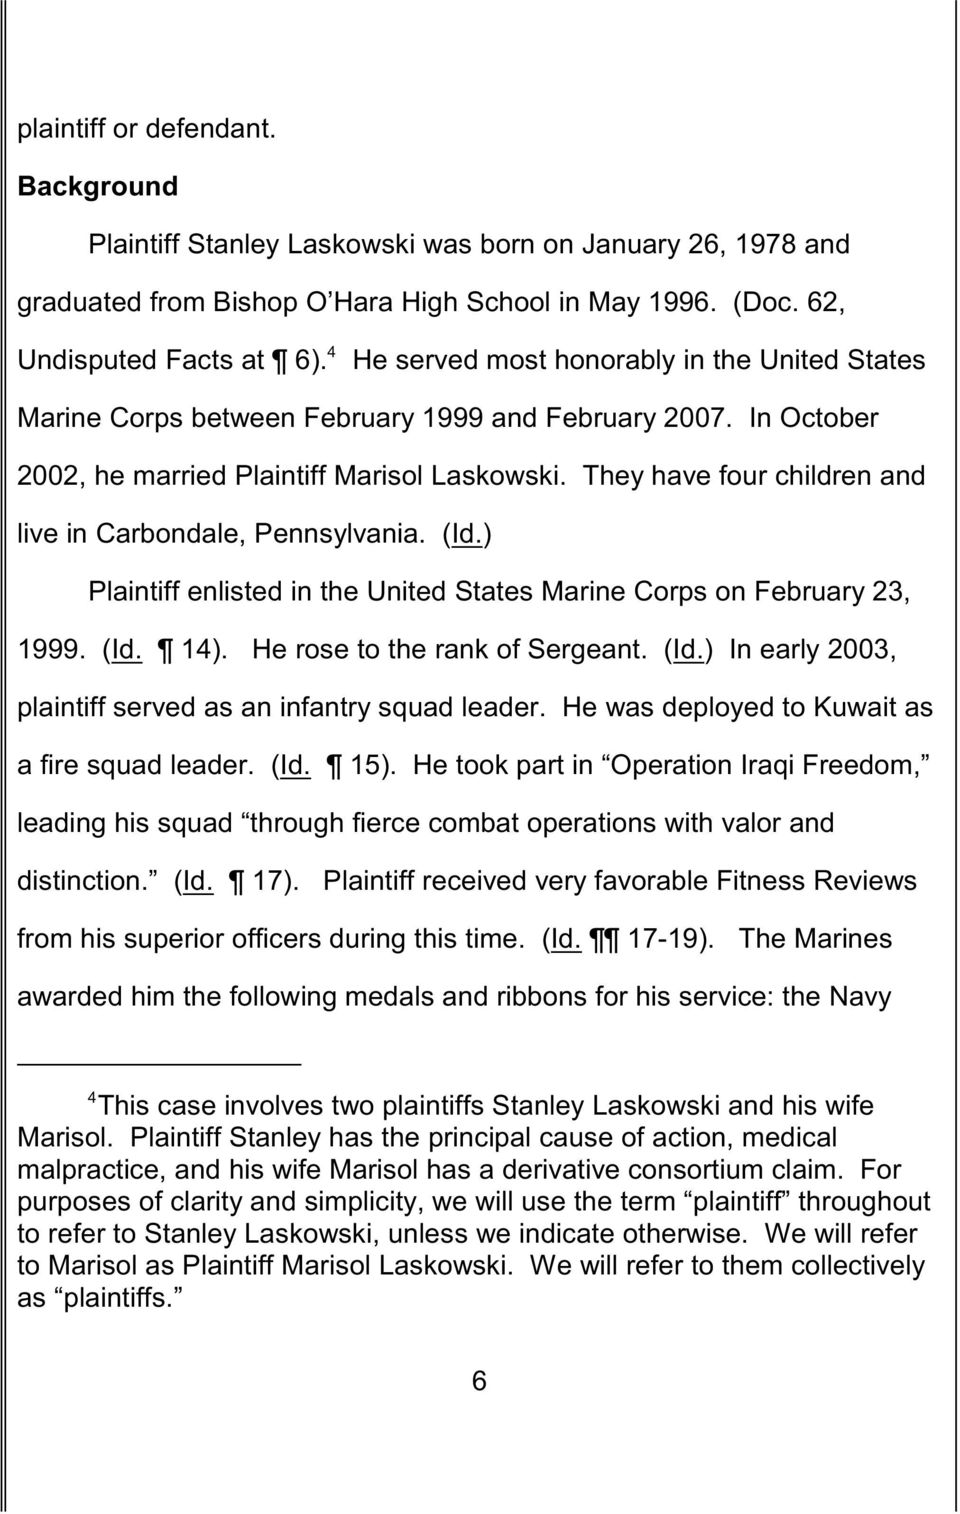 They have four children and live in Carbondale, Pennsylvania. (Id.) Plaintiff enlisted in the United States Marine Corps on February 23, 1999. (Id. 14). He rose to the rank of Sergeant. (Id.) In early 2003, plaintiff served as an infantry squad leader.